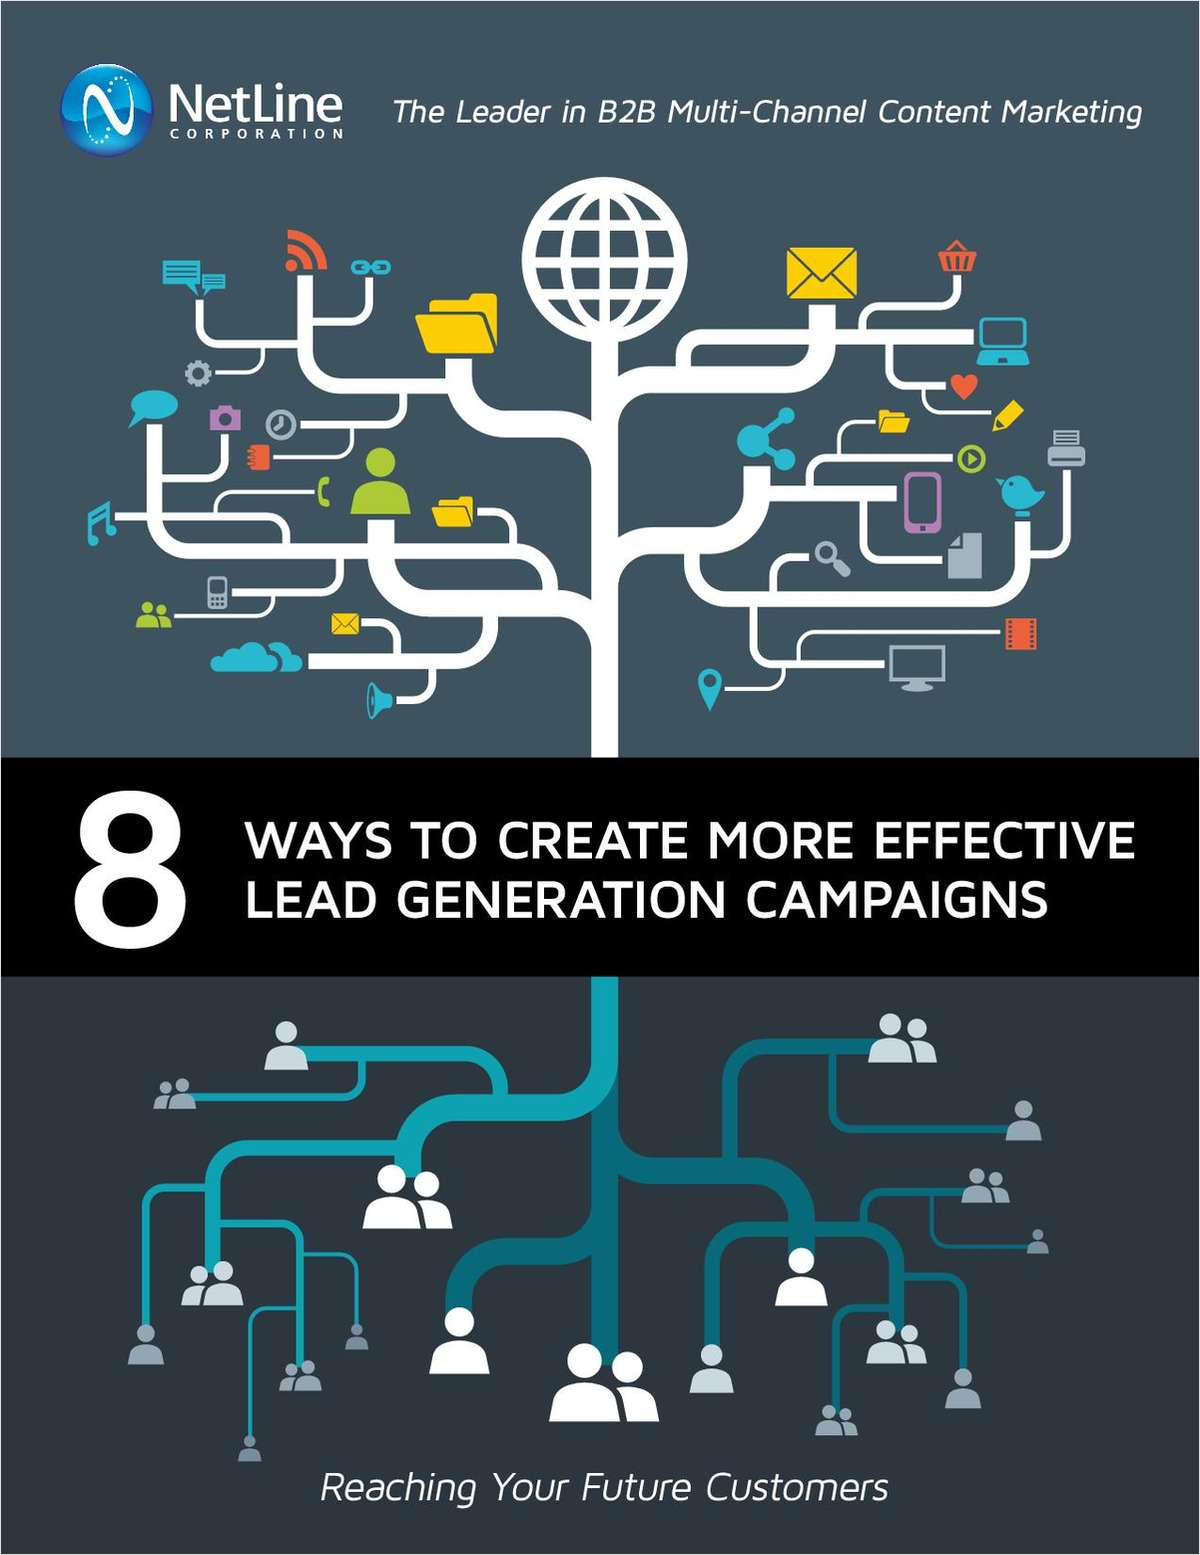 8 Ways to Create More Effective Lead Generation Programs